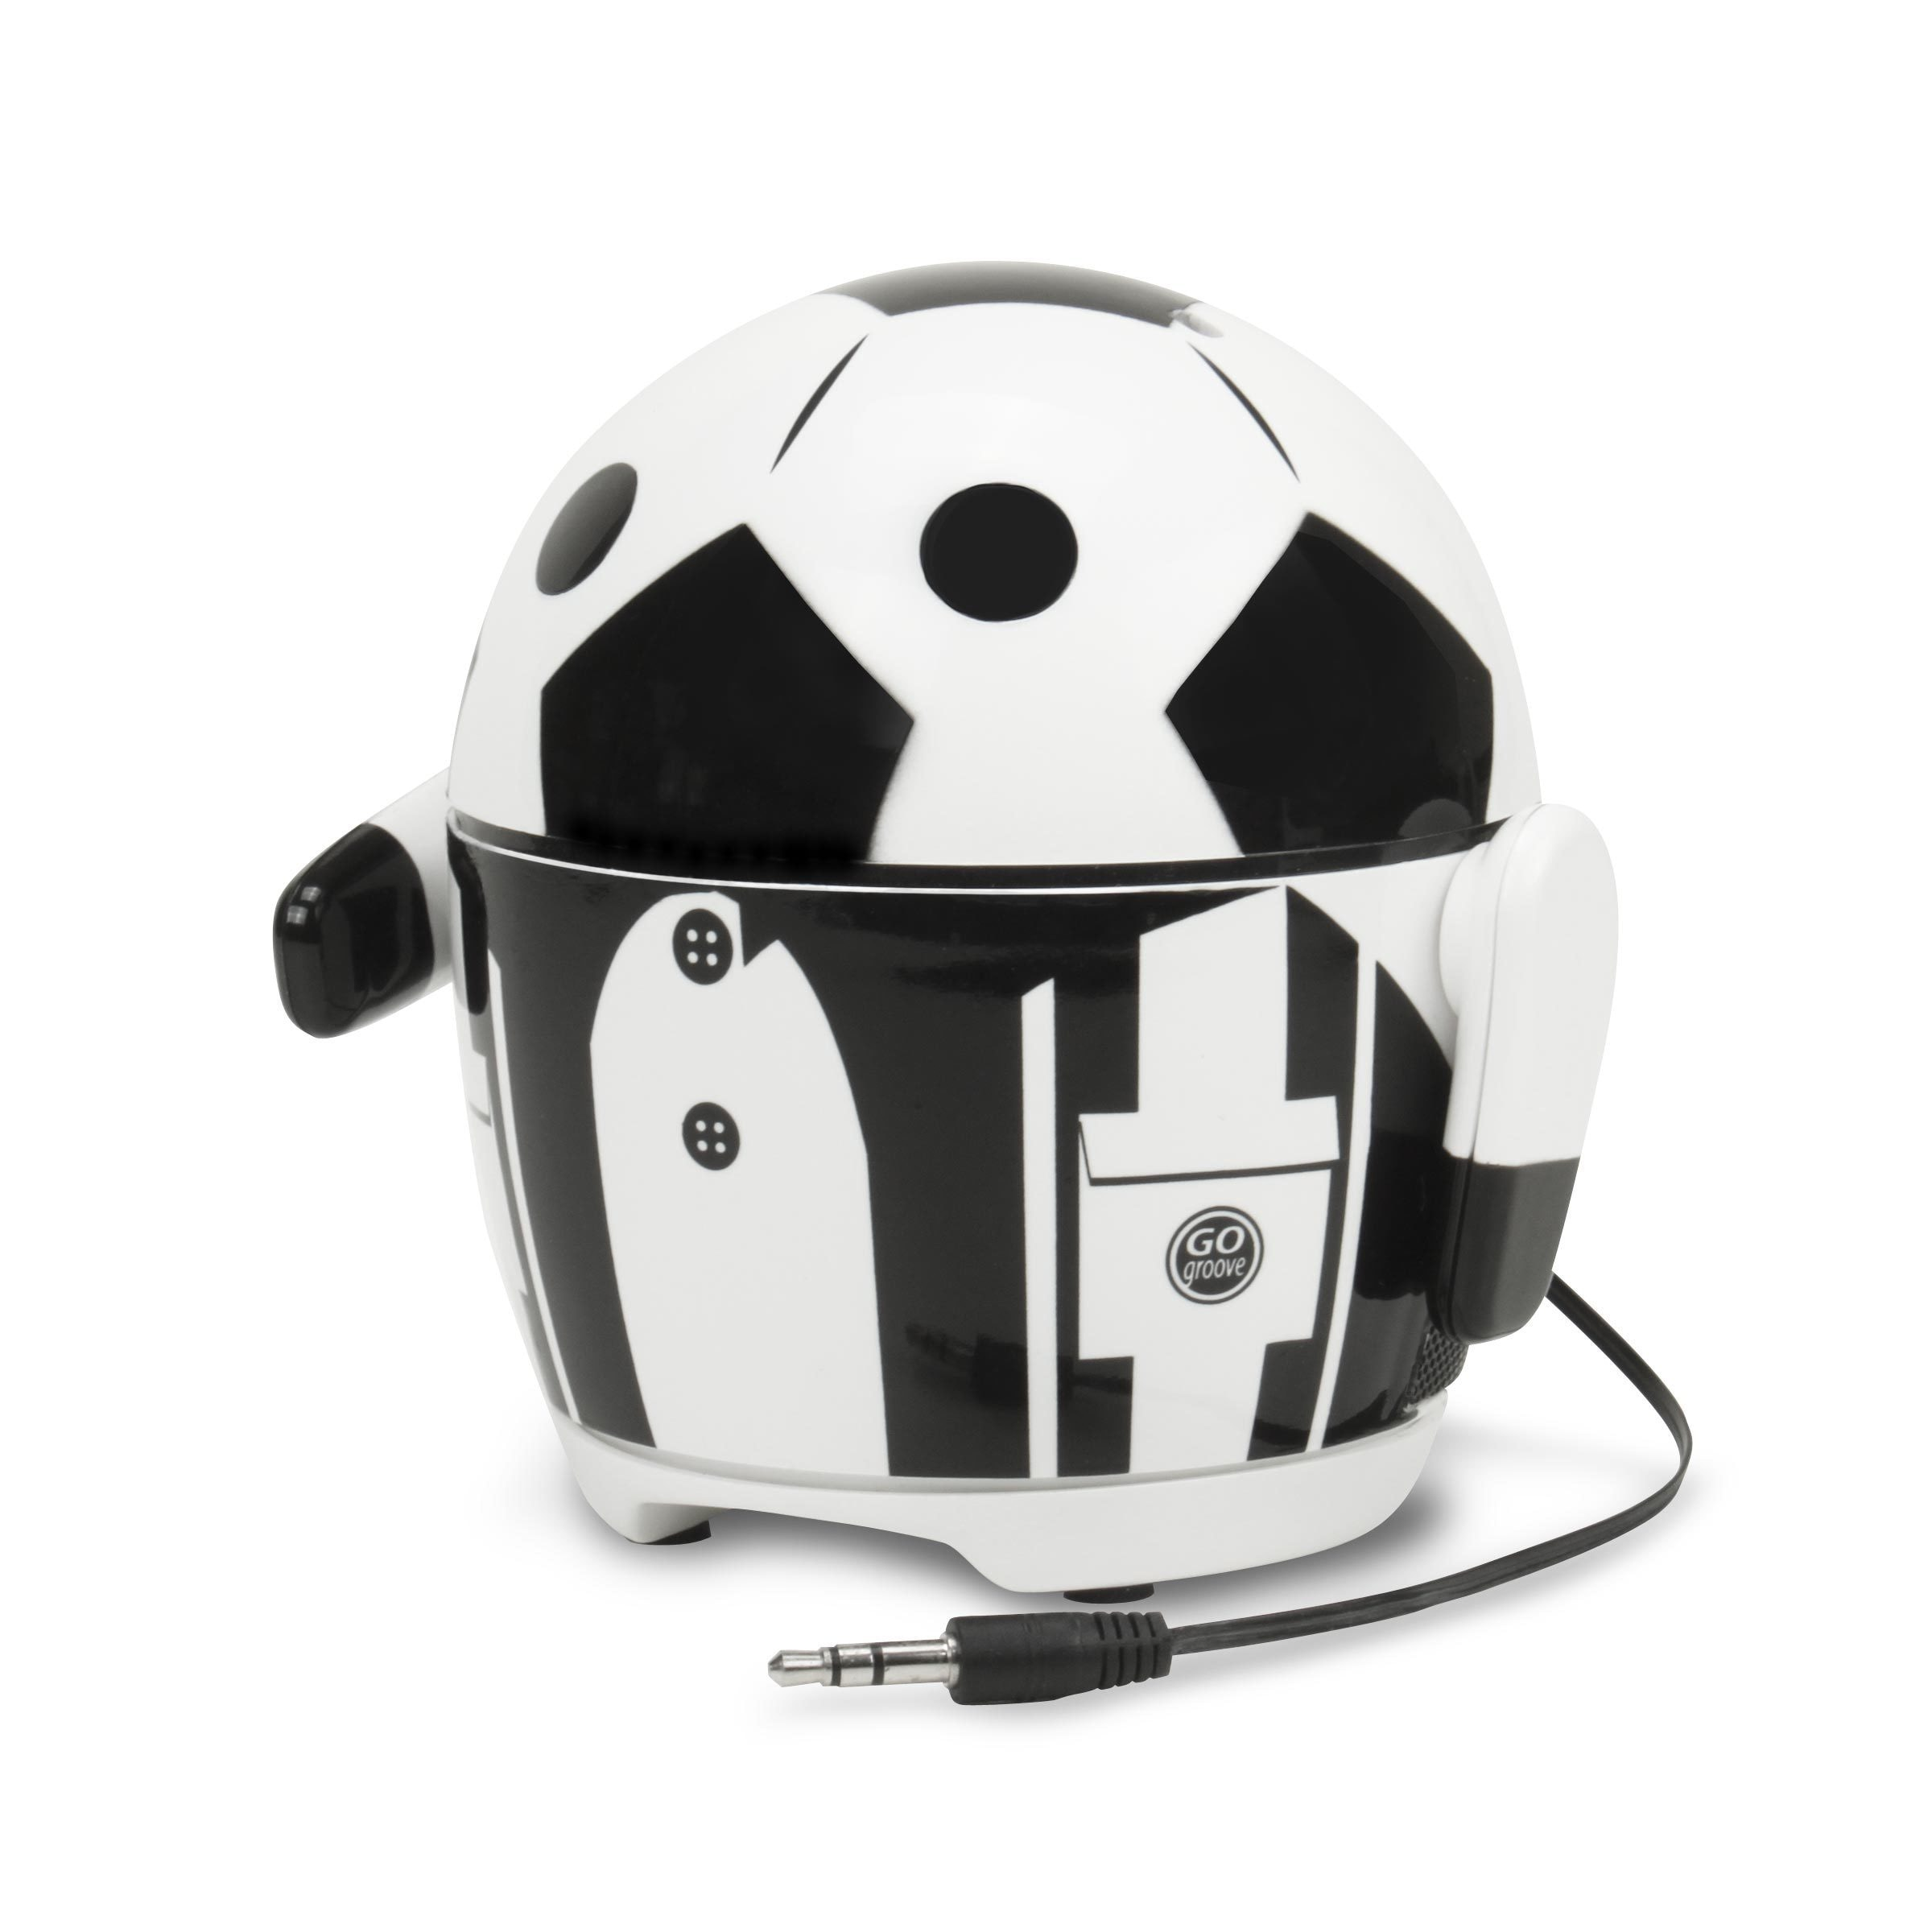 Acer GOgroove Pal Soccer Bot - the Rechargeable Android S...